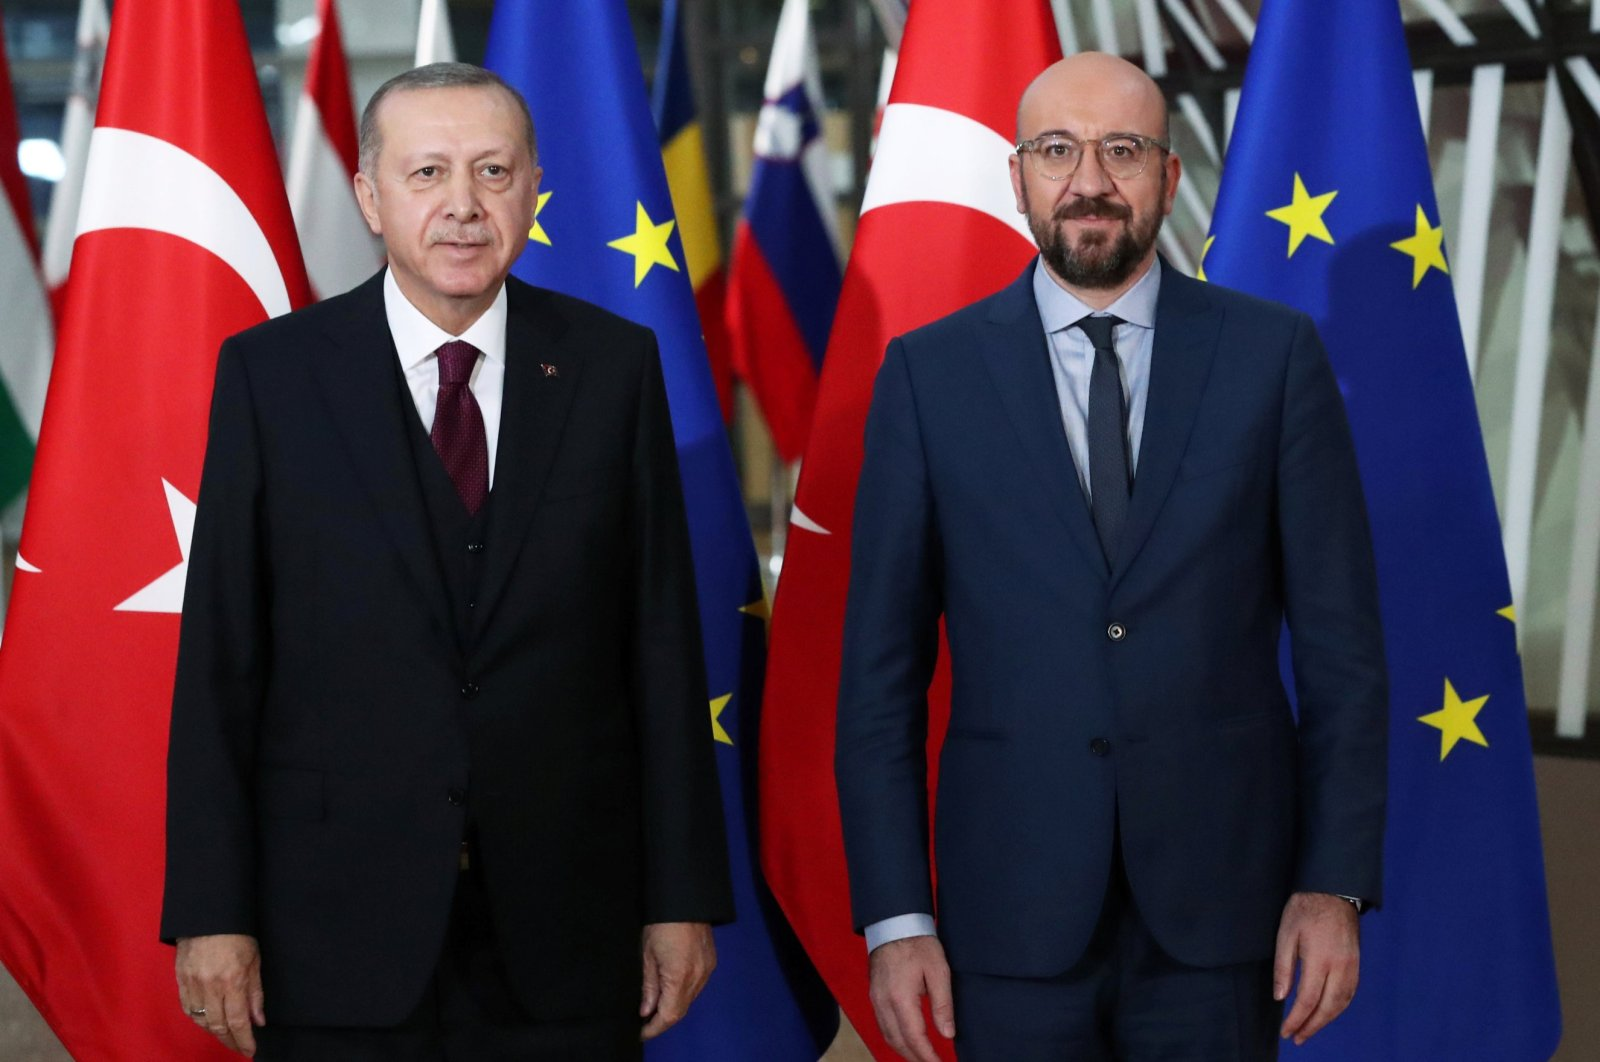 Turkish President Tayyip Erdoğan and EU Council President Charles Michel pose in Brussels, Belgium March 9, 2020. (Reuters File Photo)